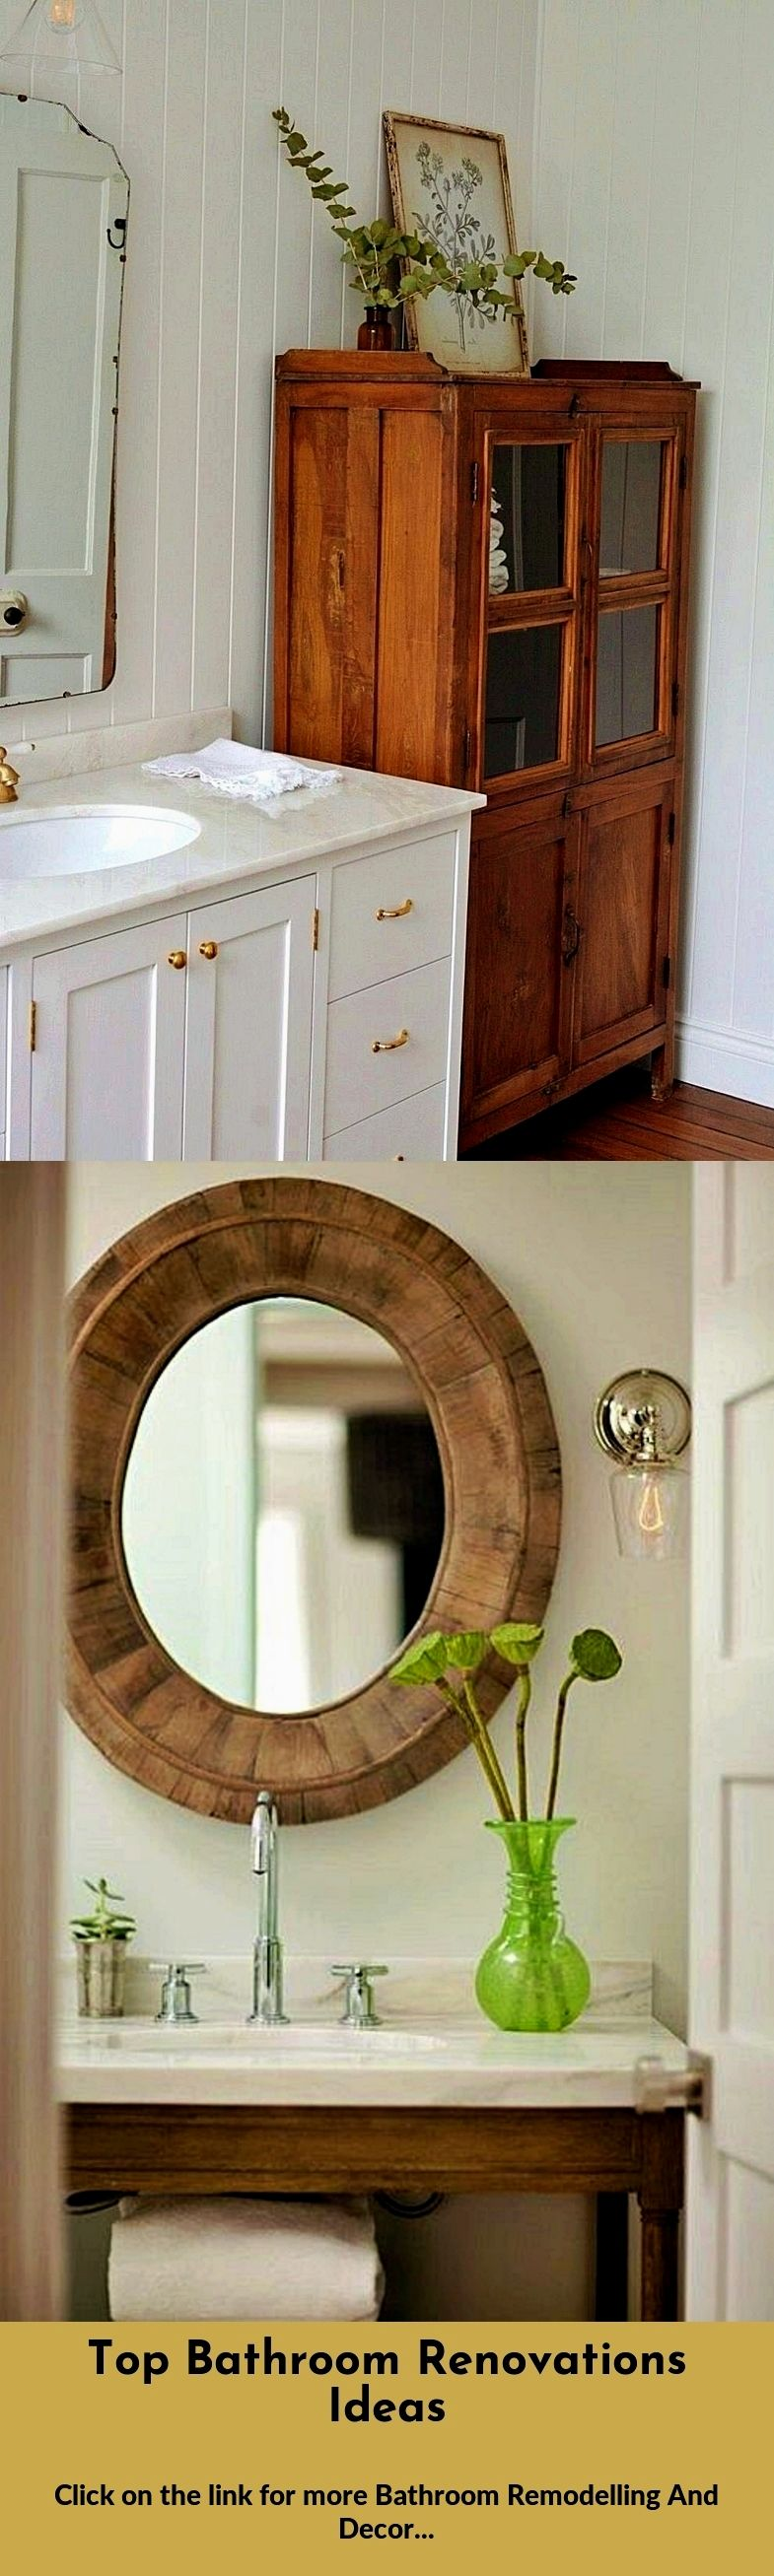 Bathroom decor diy guide, Attempt to avoid outrageous wall ...